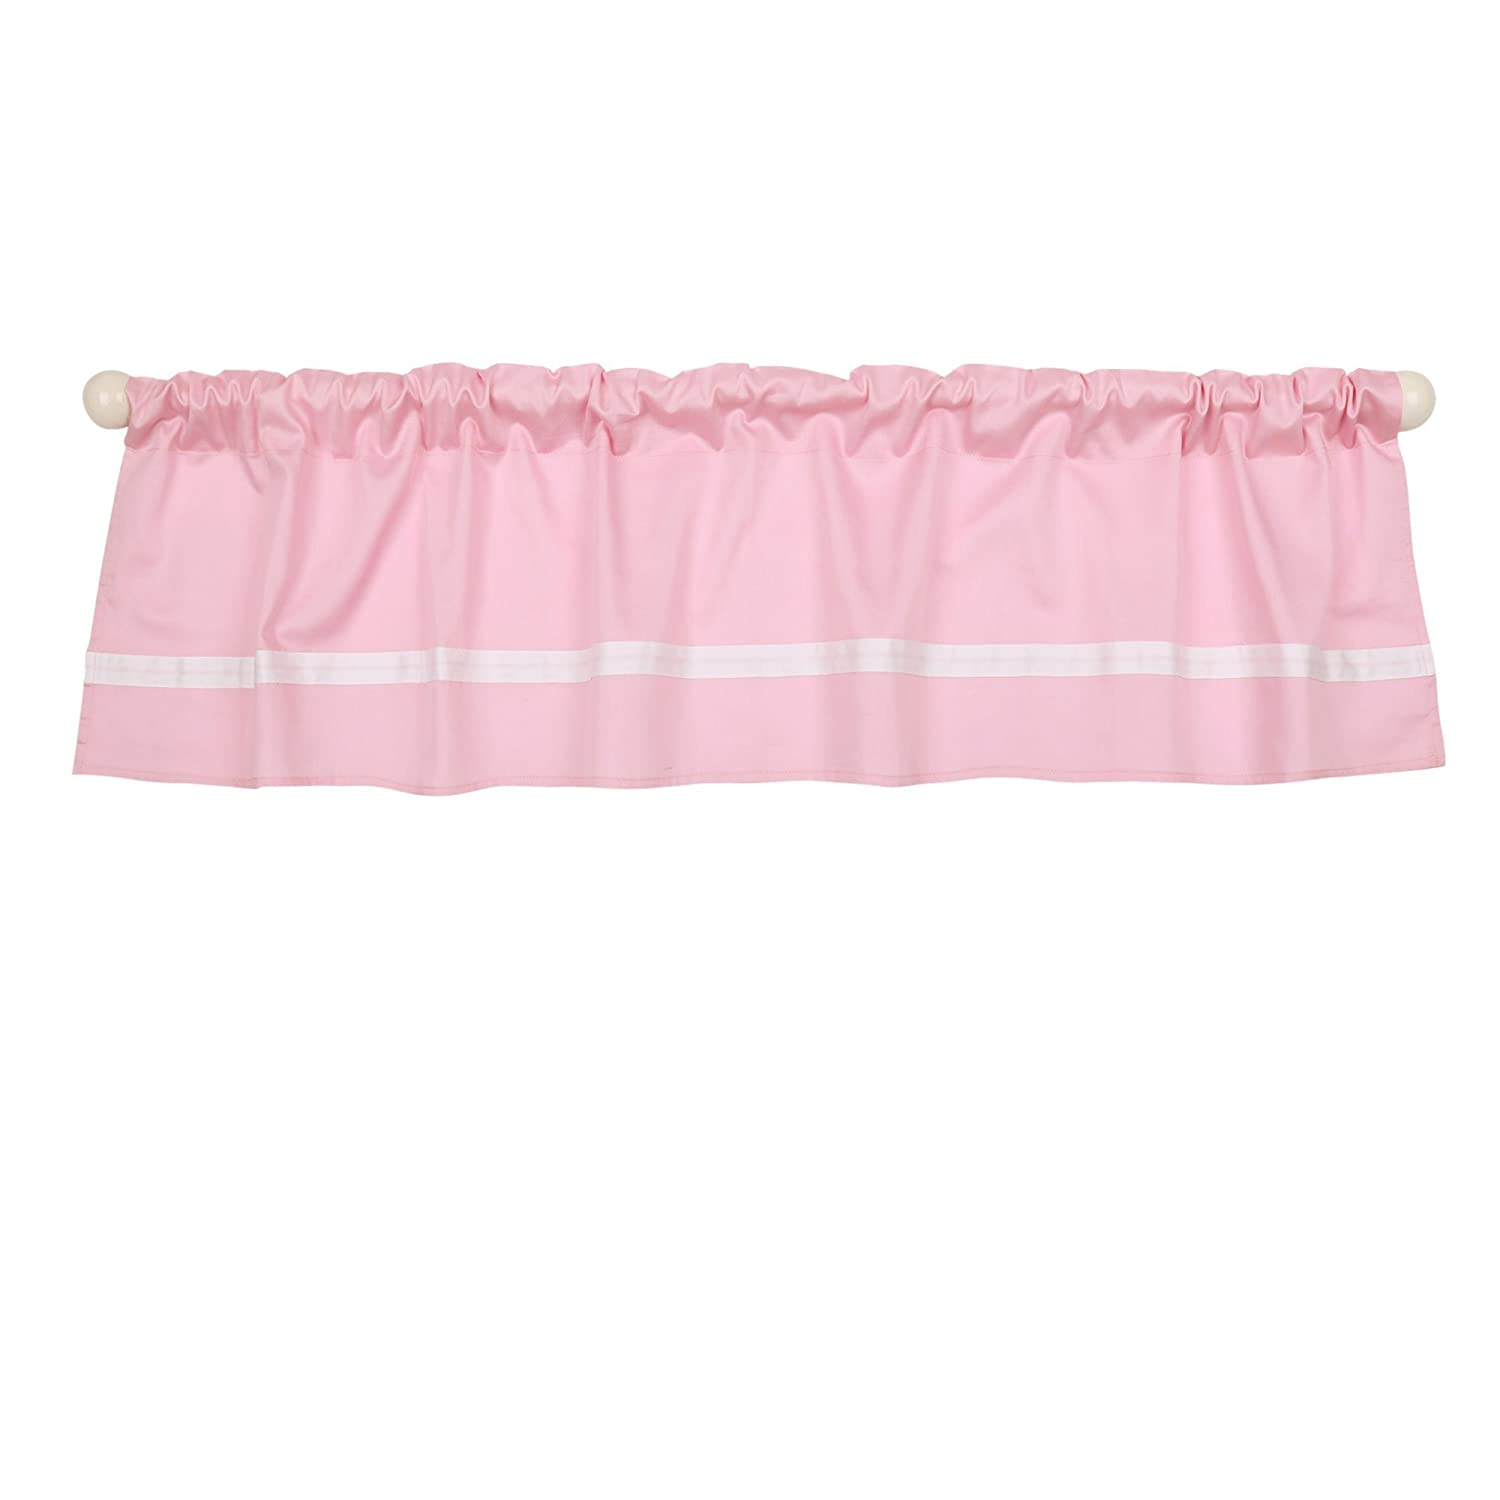 Coral Pink Tailored Window Valance by The Peanut Shell - 100% Cotton Sateen Farallon Brands WVSDCLWH